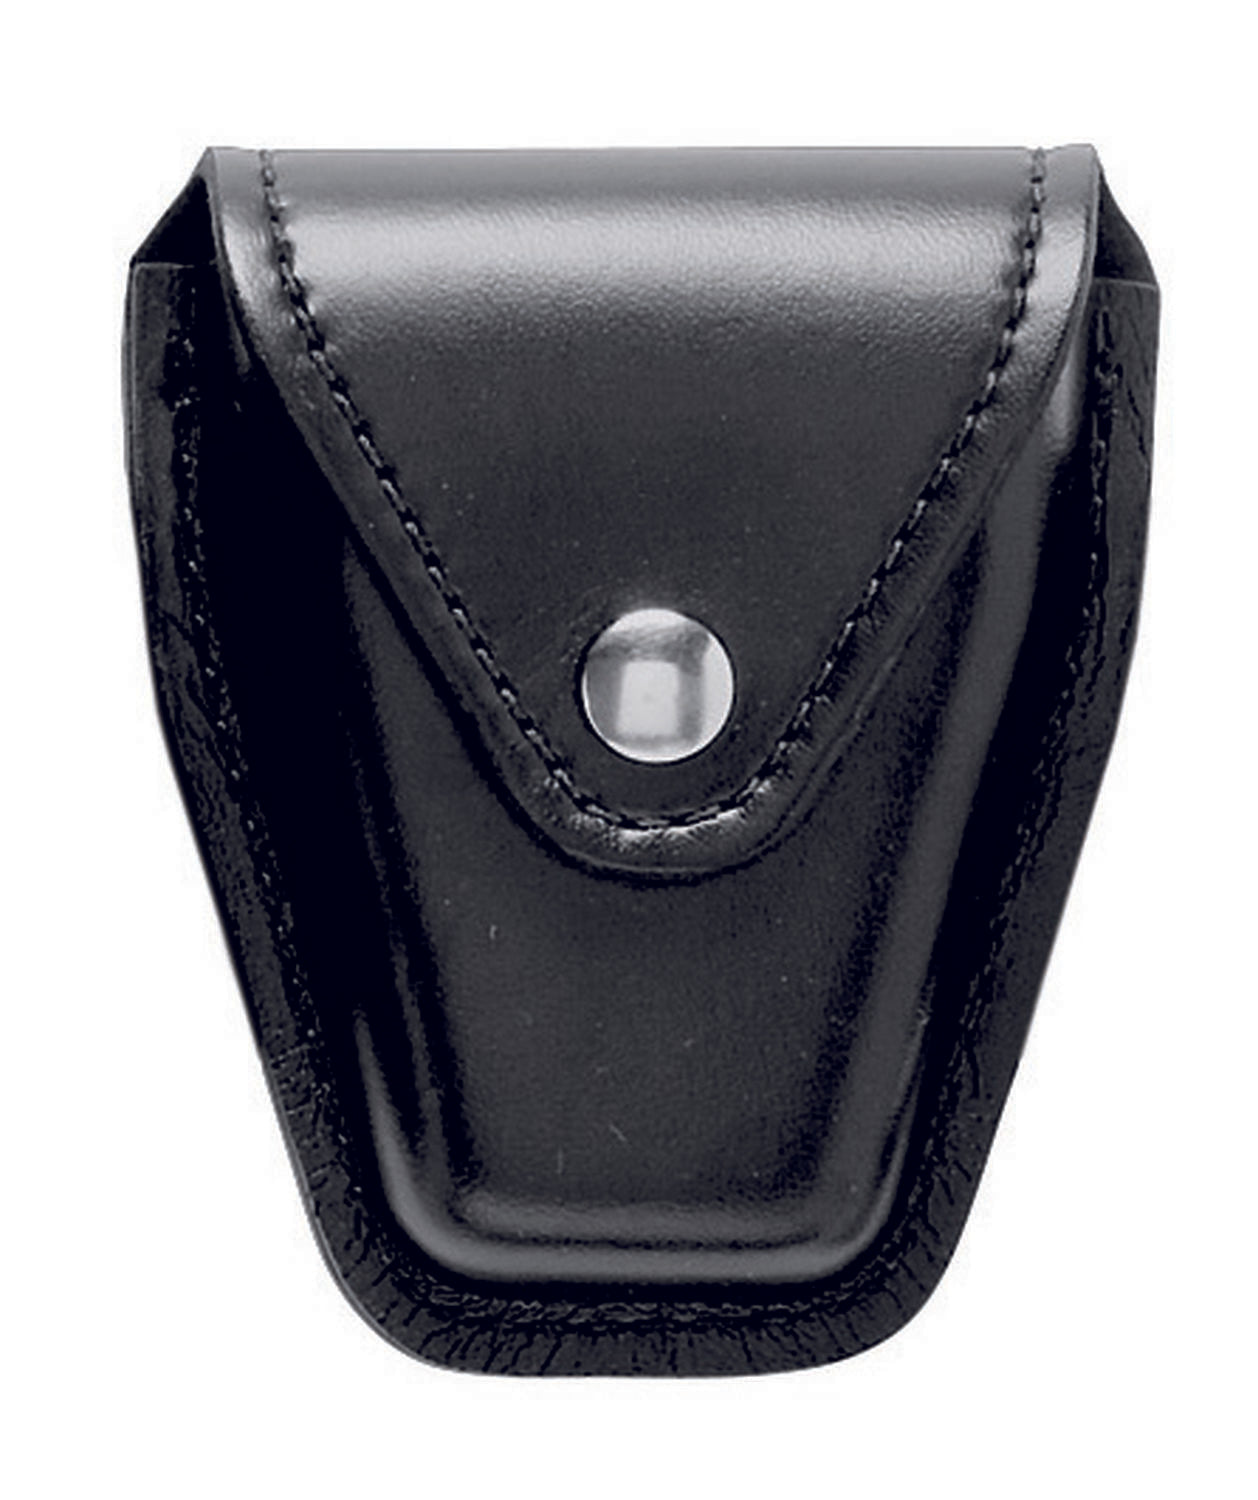 Safariland Model 190 Handcuff Case